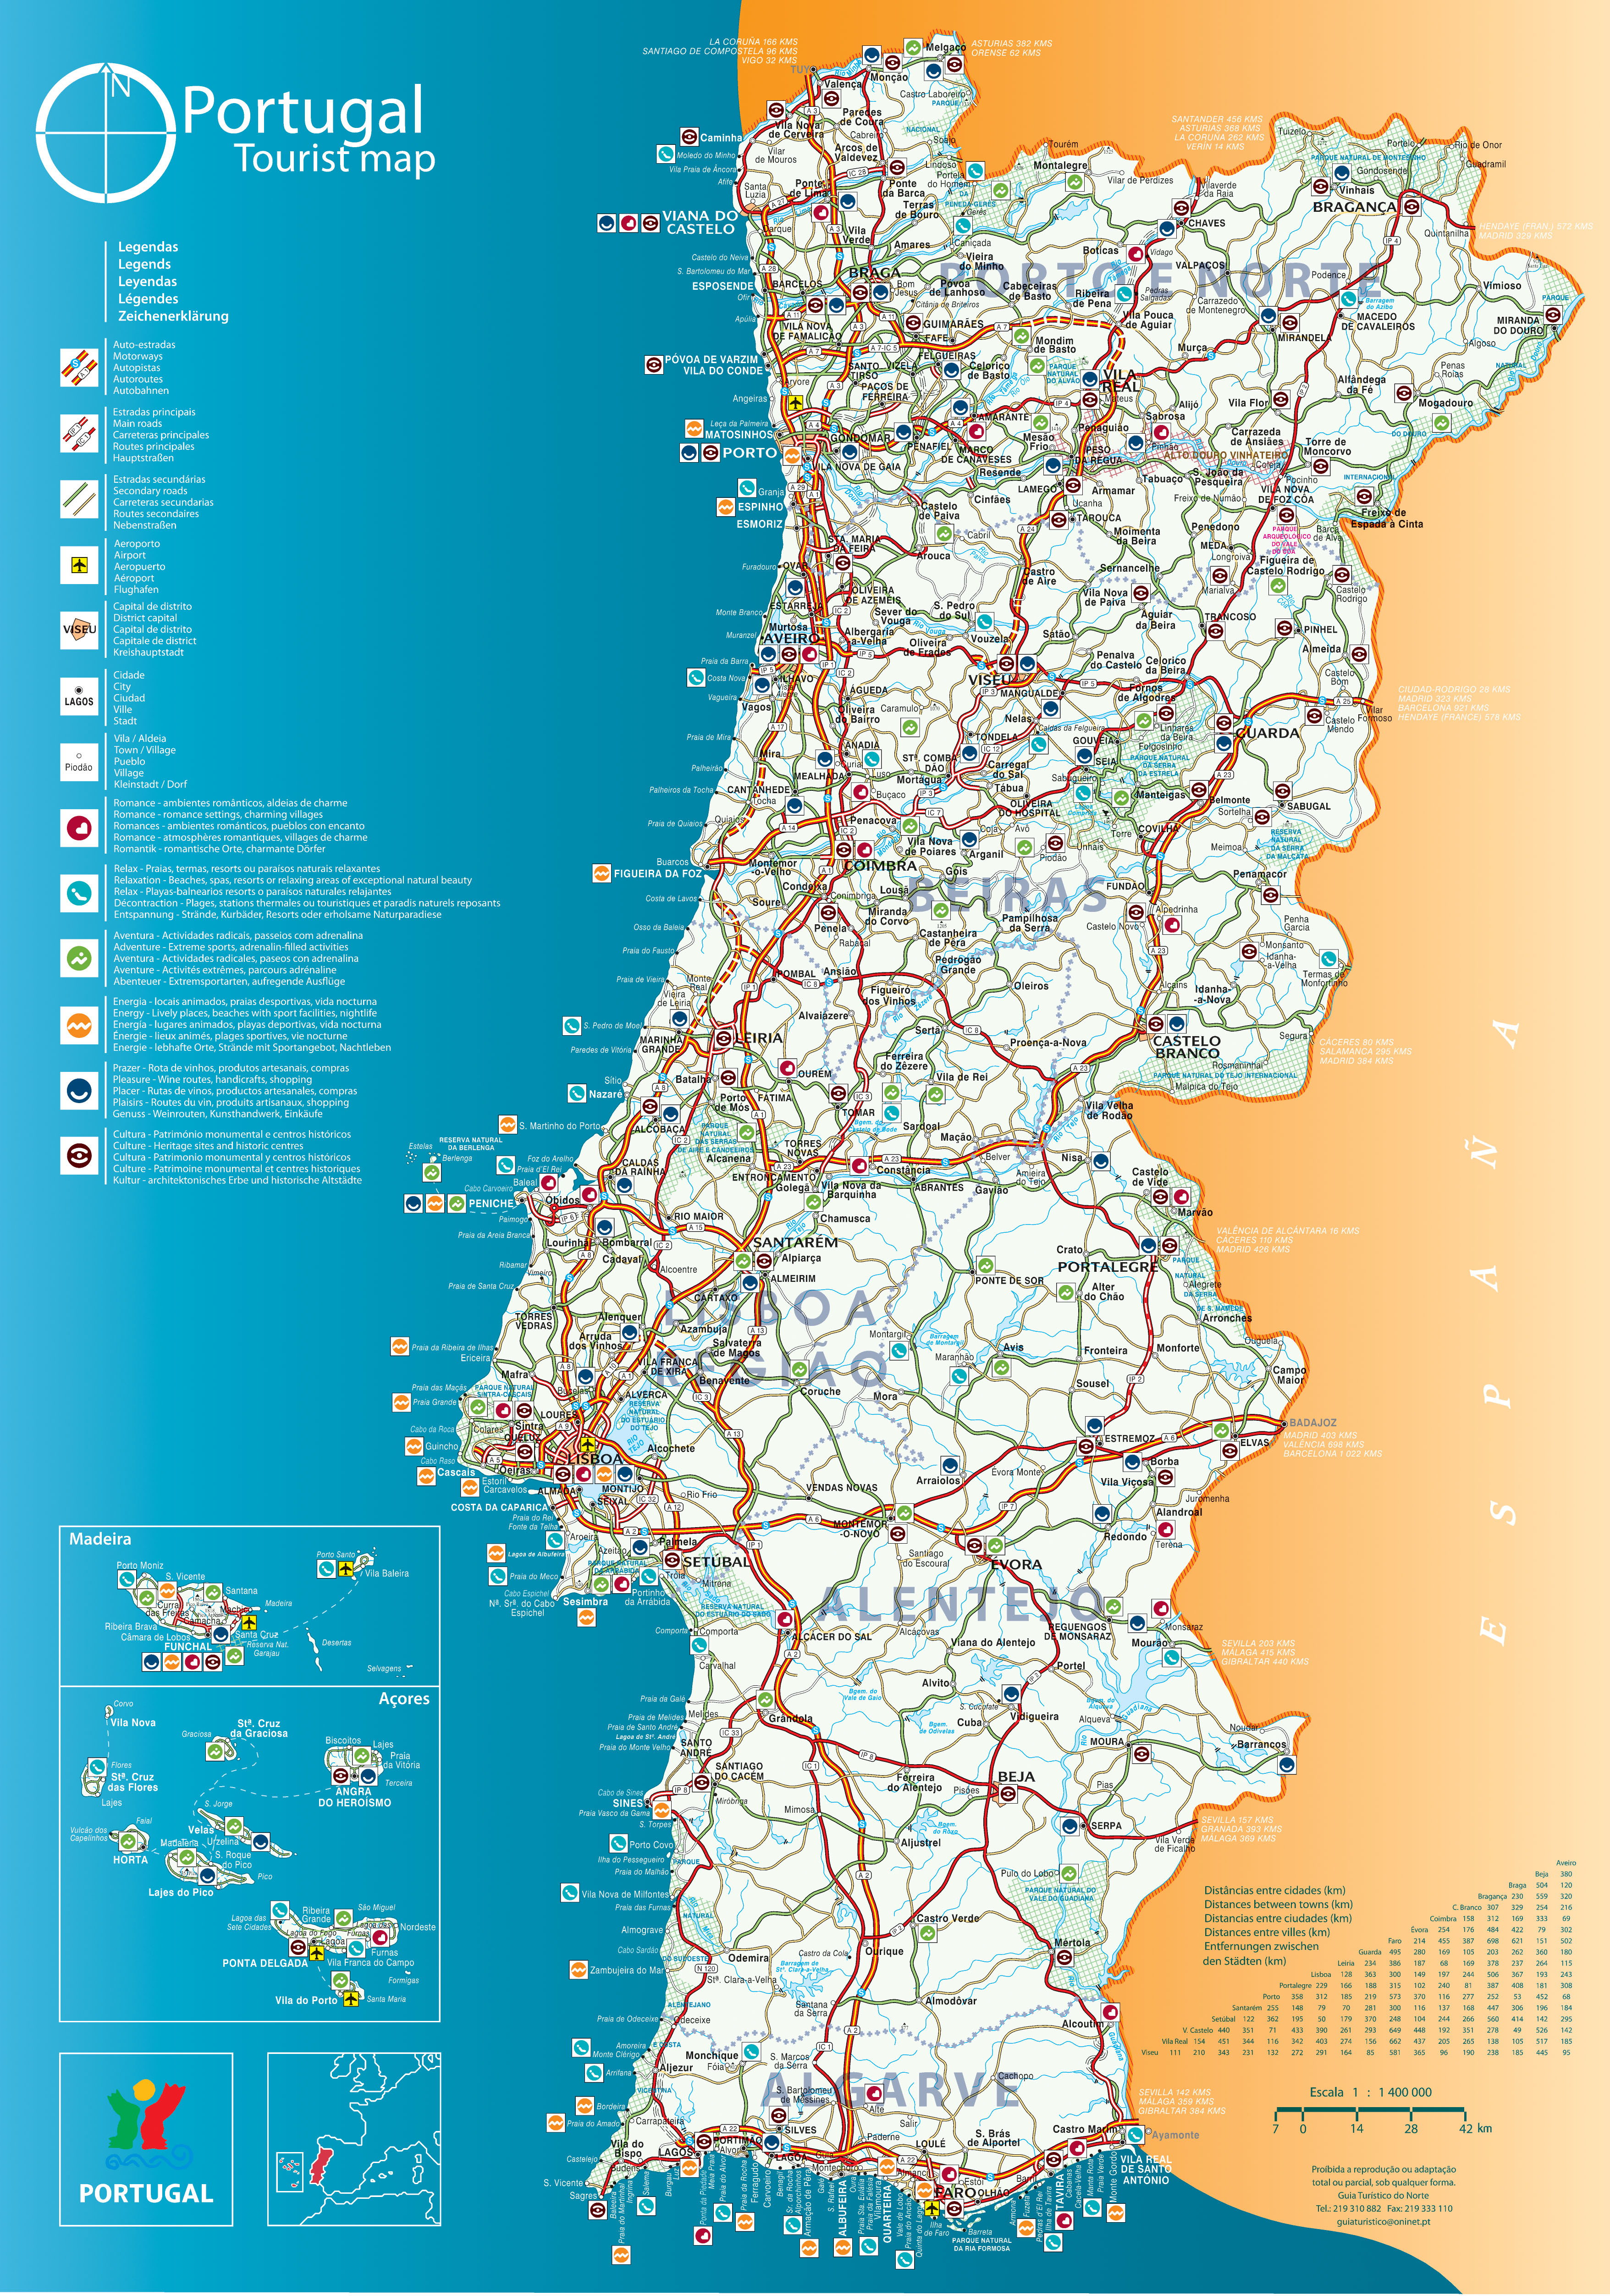 Driving In Portugal Advice And Tips To Explore Portugal By Car - Portugal motorway map